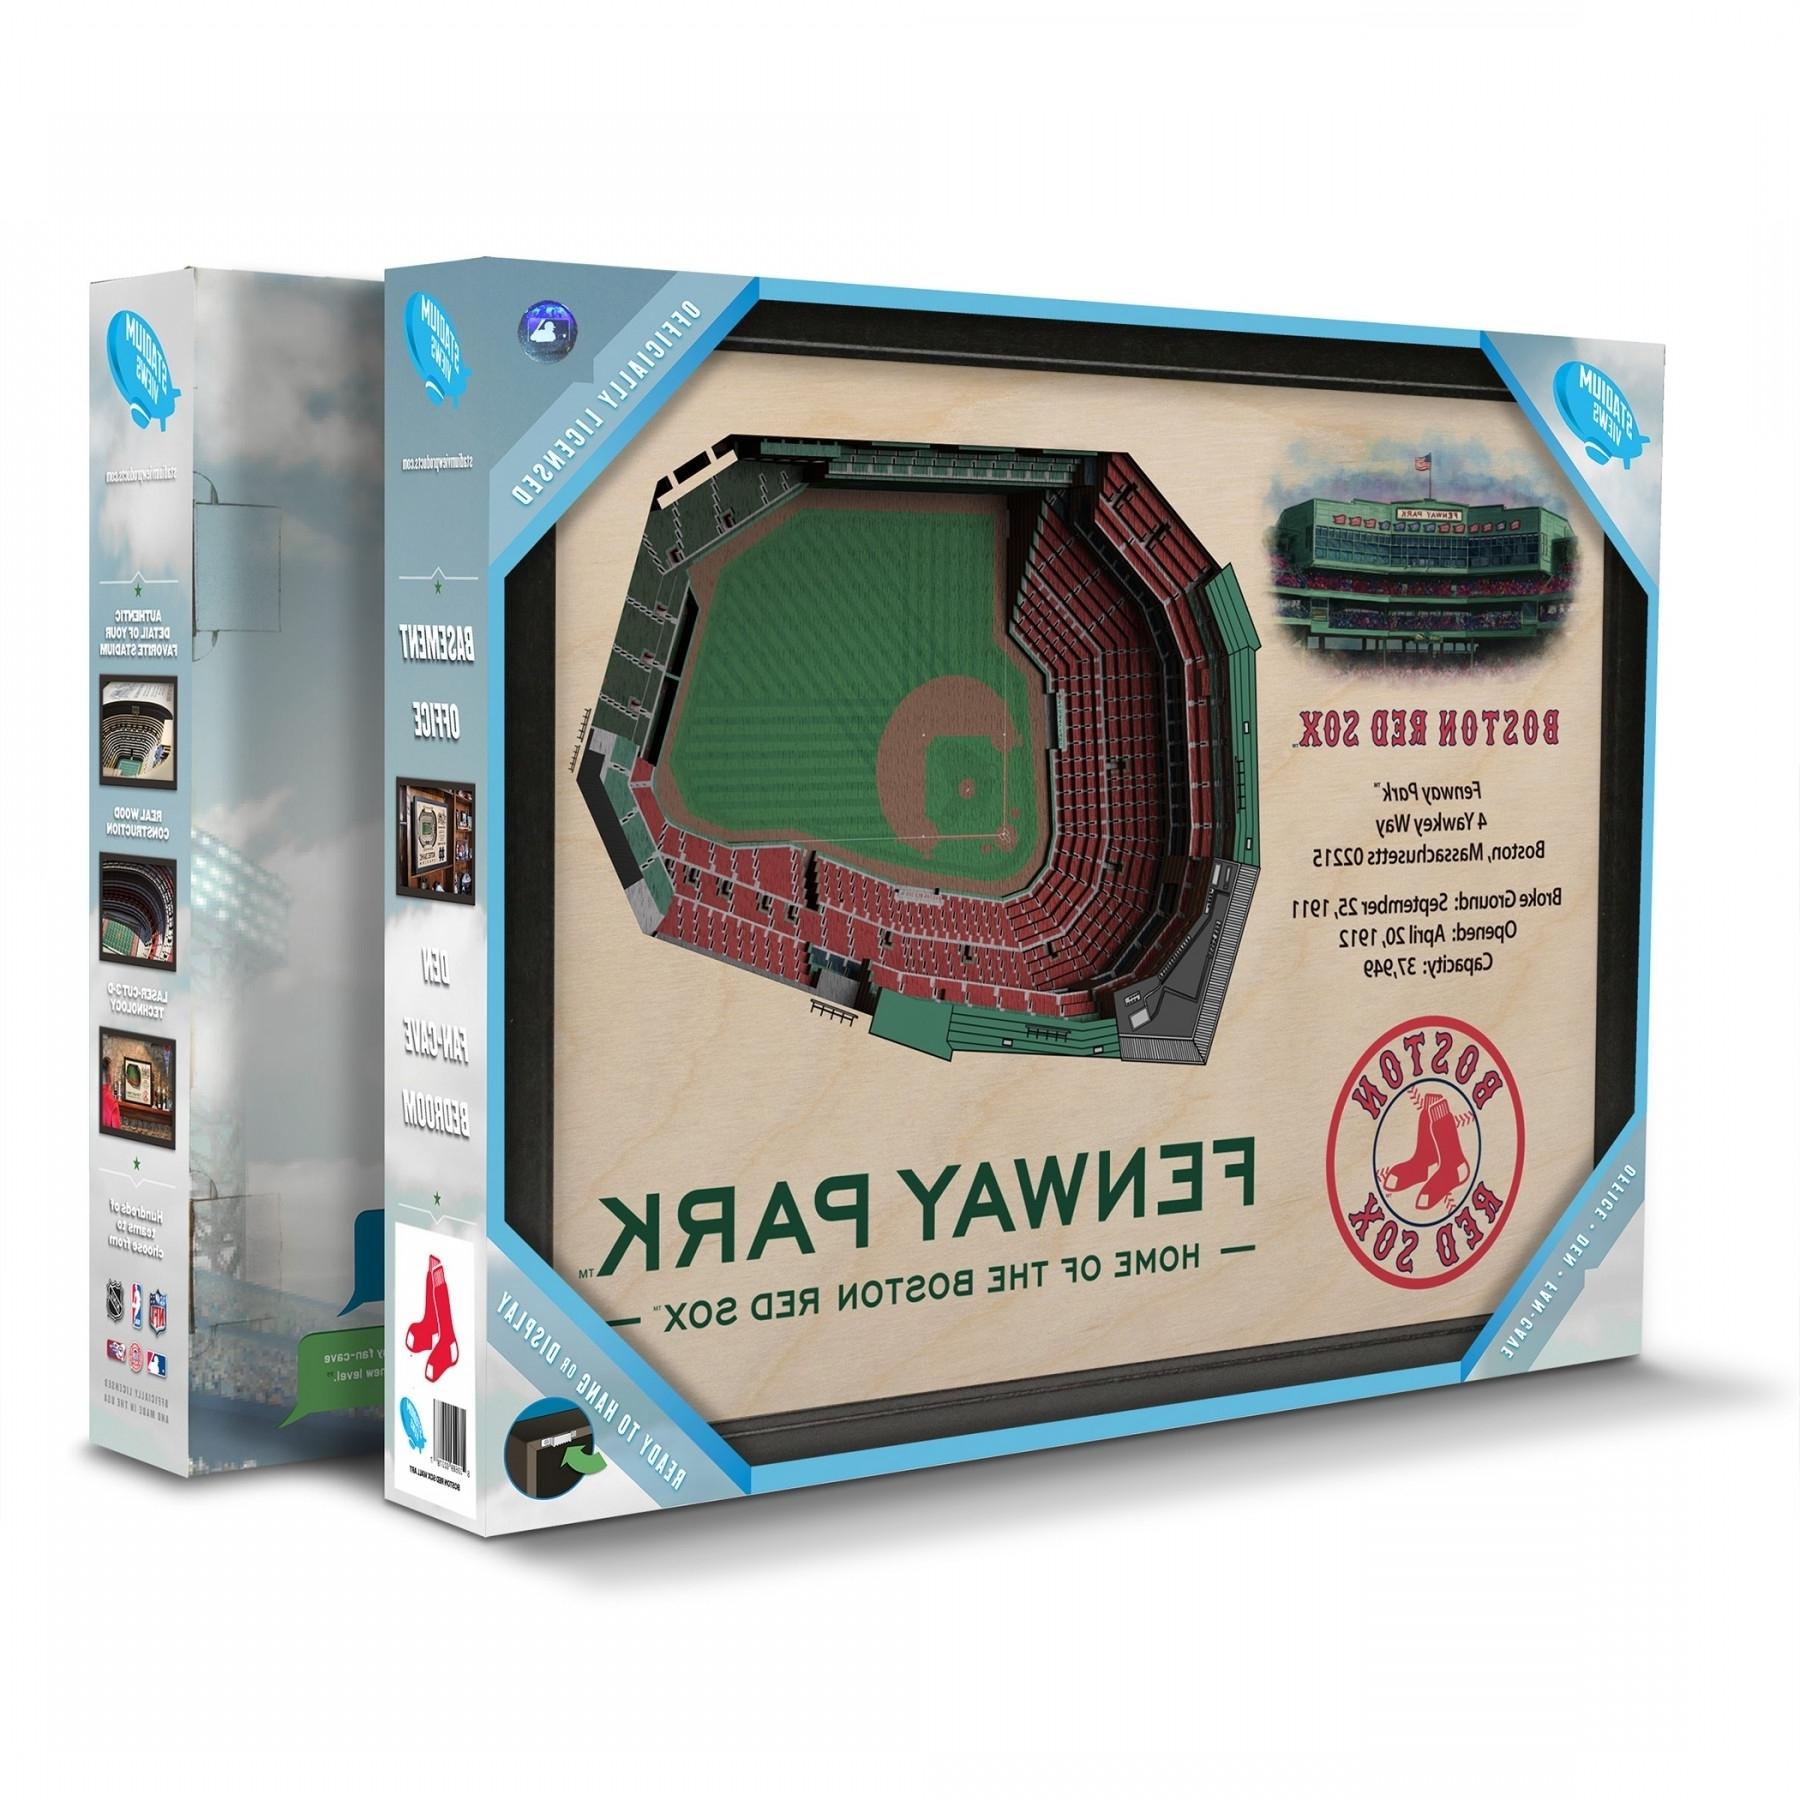 Favorite Boston Red Sox Stadiumview Wall Art – Fenway Park 3 D Reproduction Inside Boston Red Sox Wall Art (View 7 of 15)